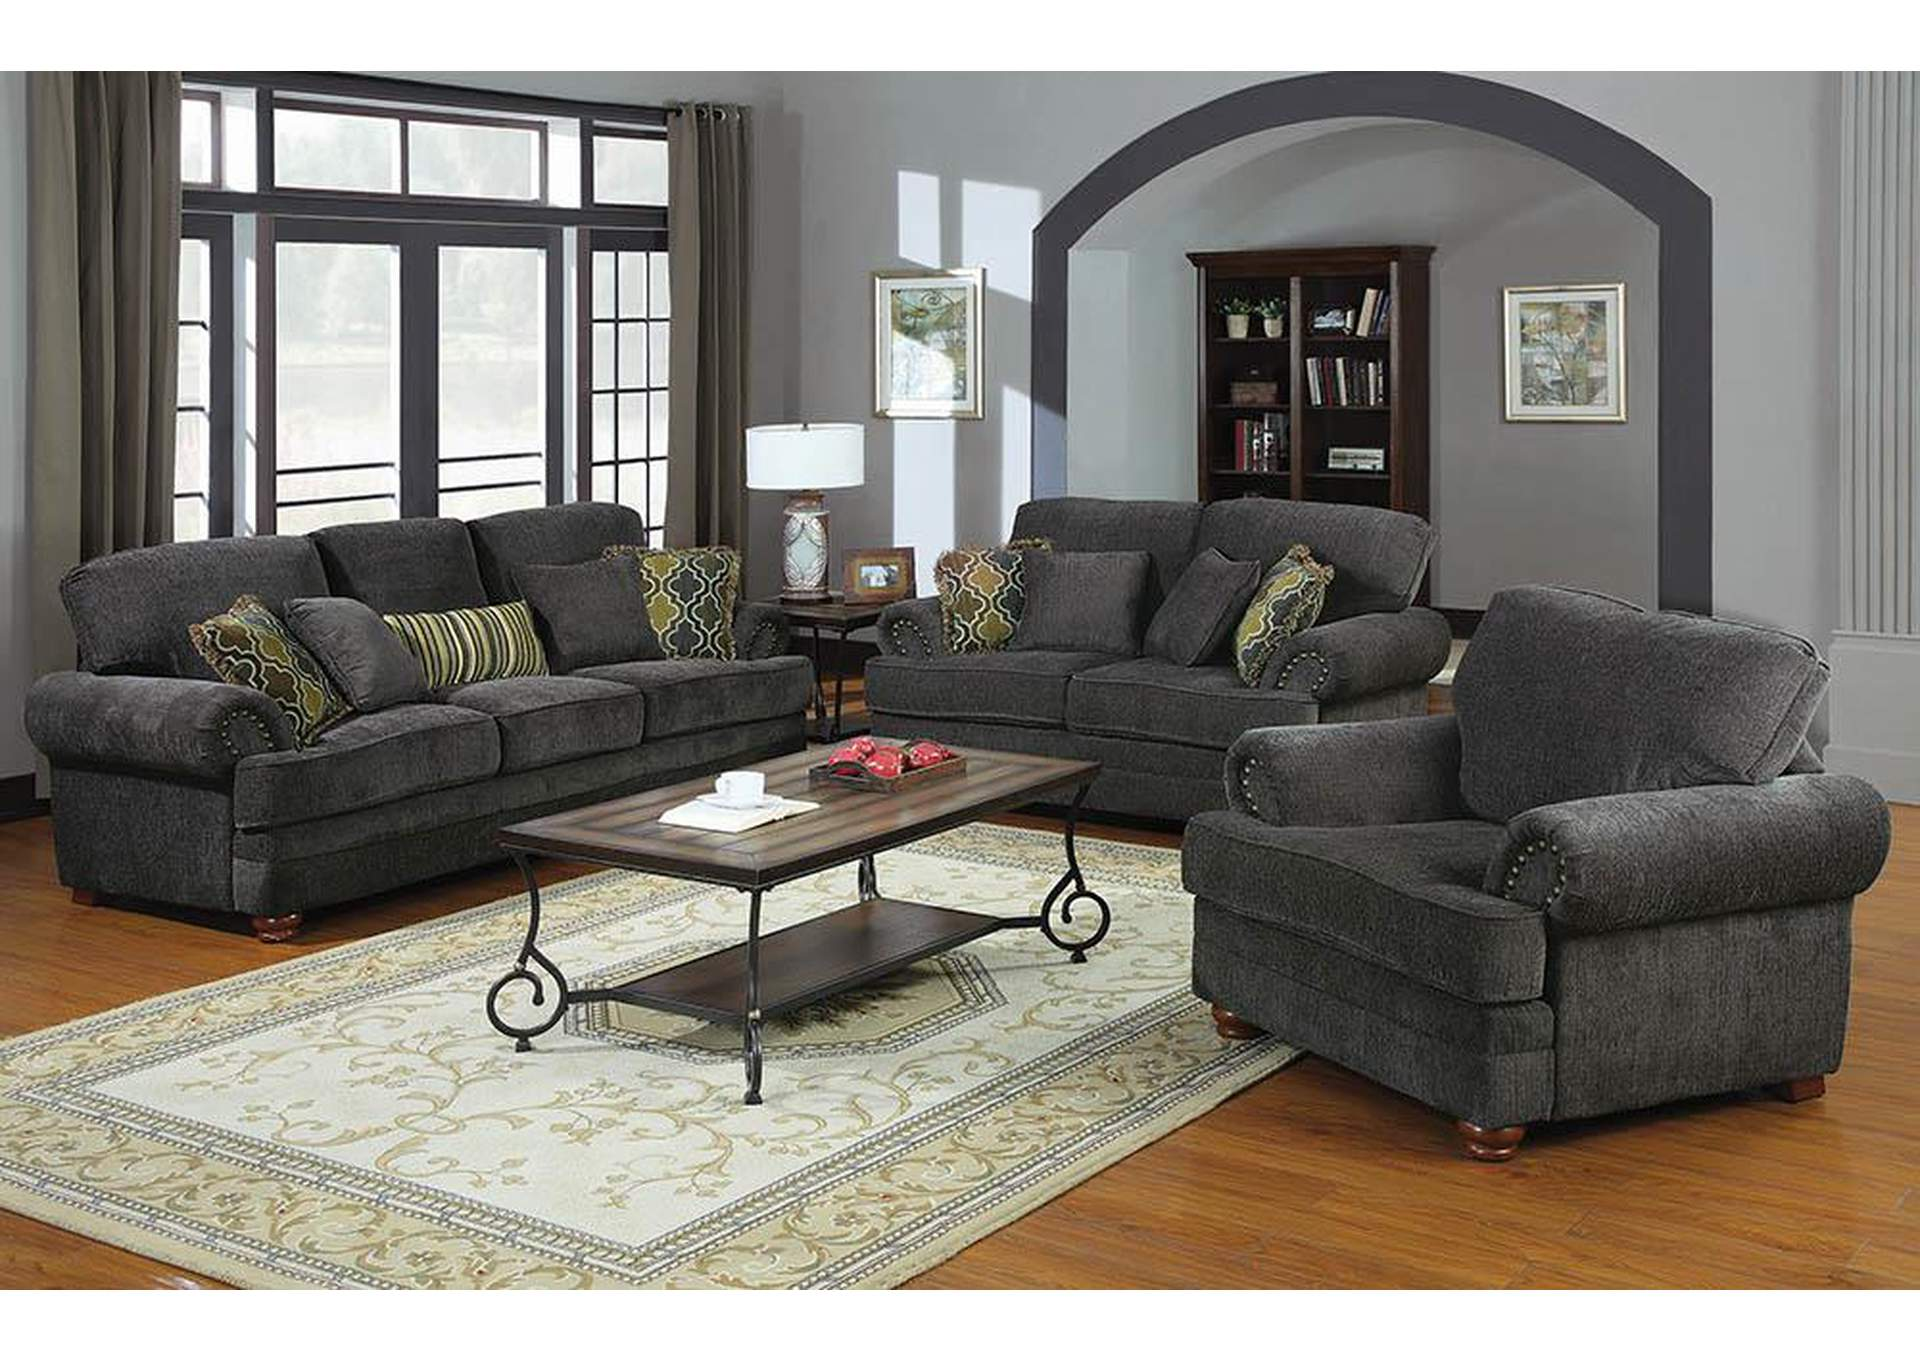 Colton Grey Sofa,Coaster Furniture